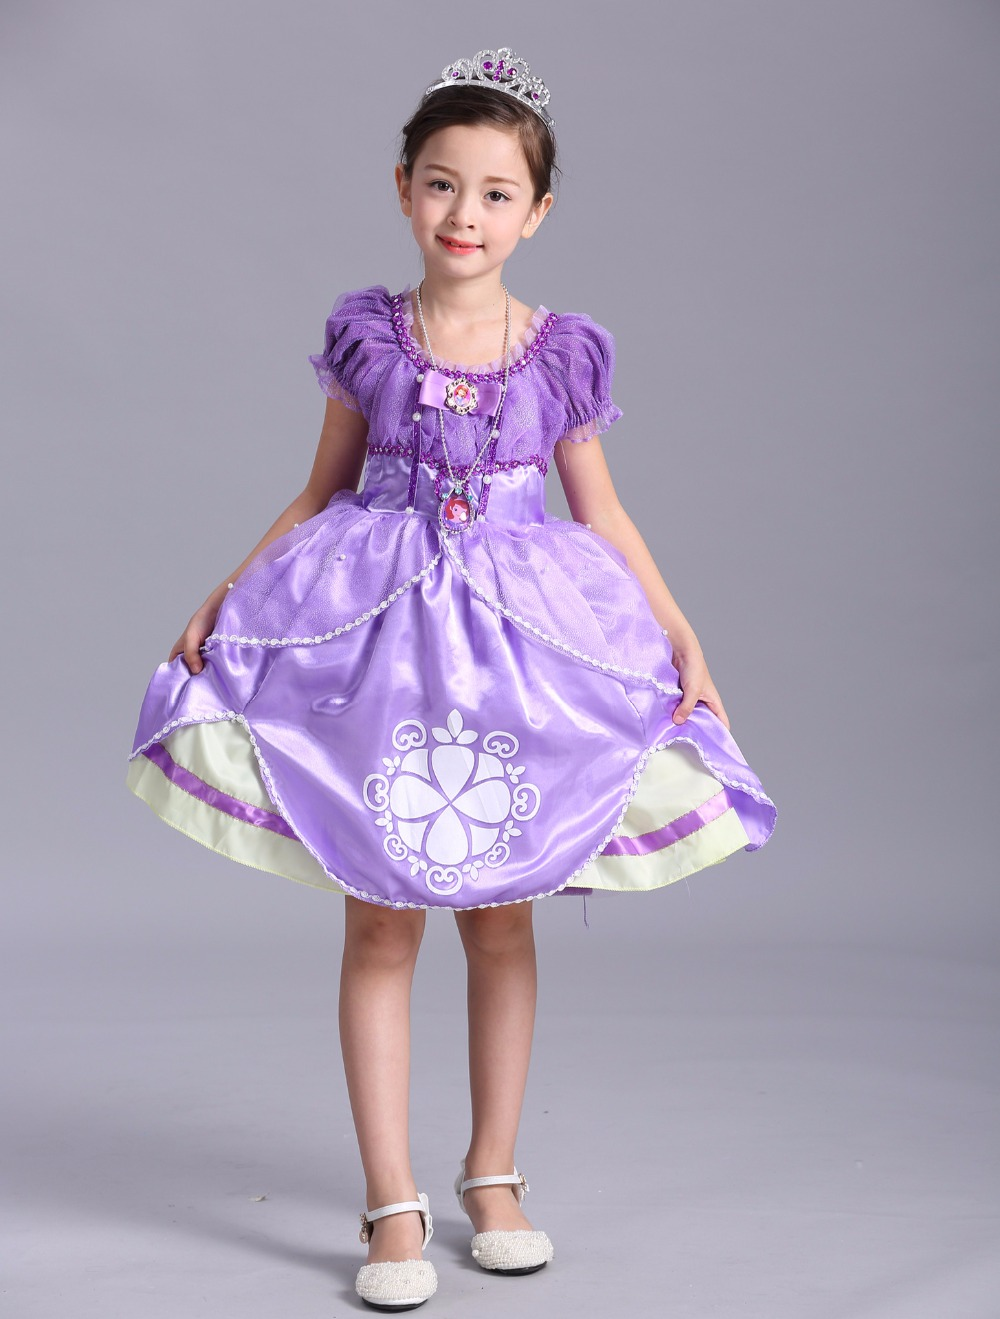 Fashion high quality cotton lining beaded character princess sofia the first costume dress for kids birthday parties<br><br>Aliexpress